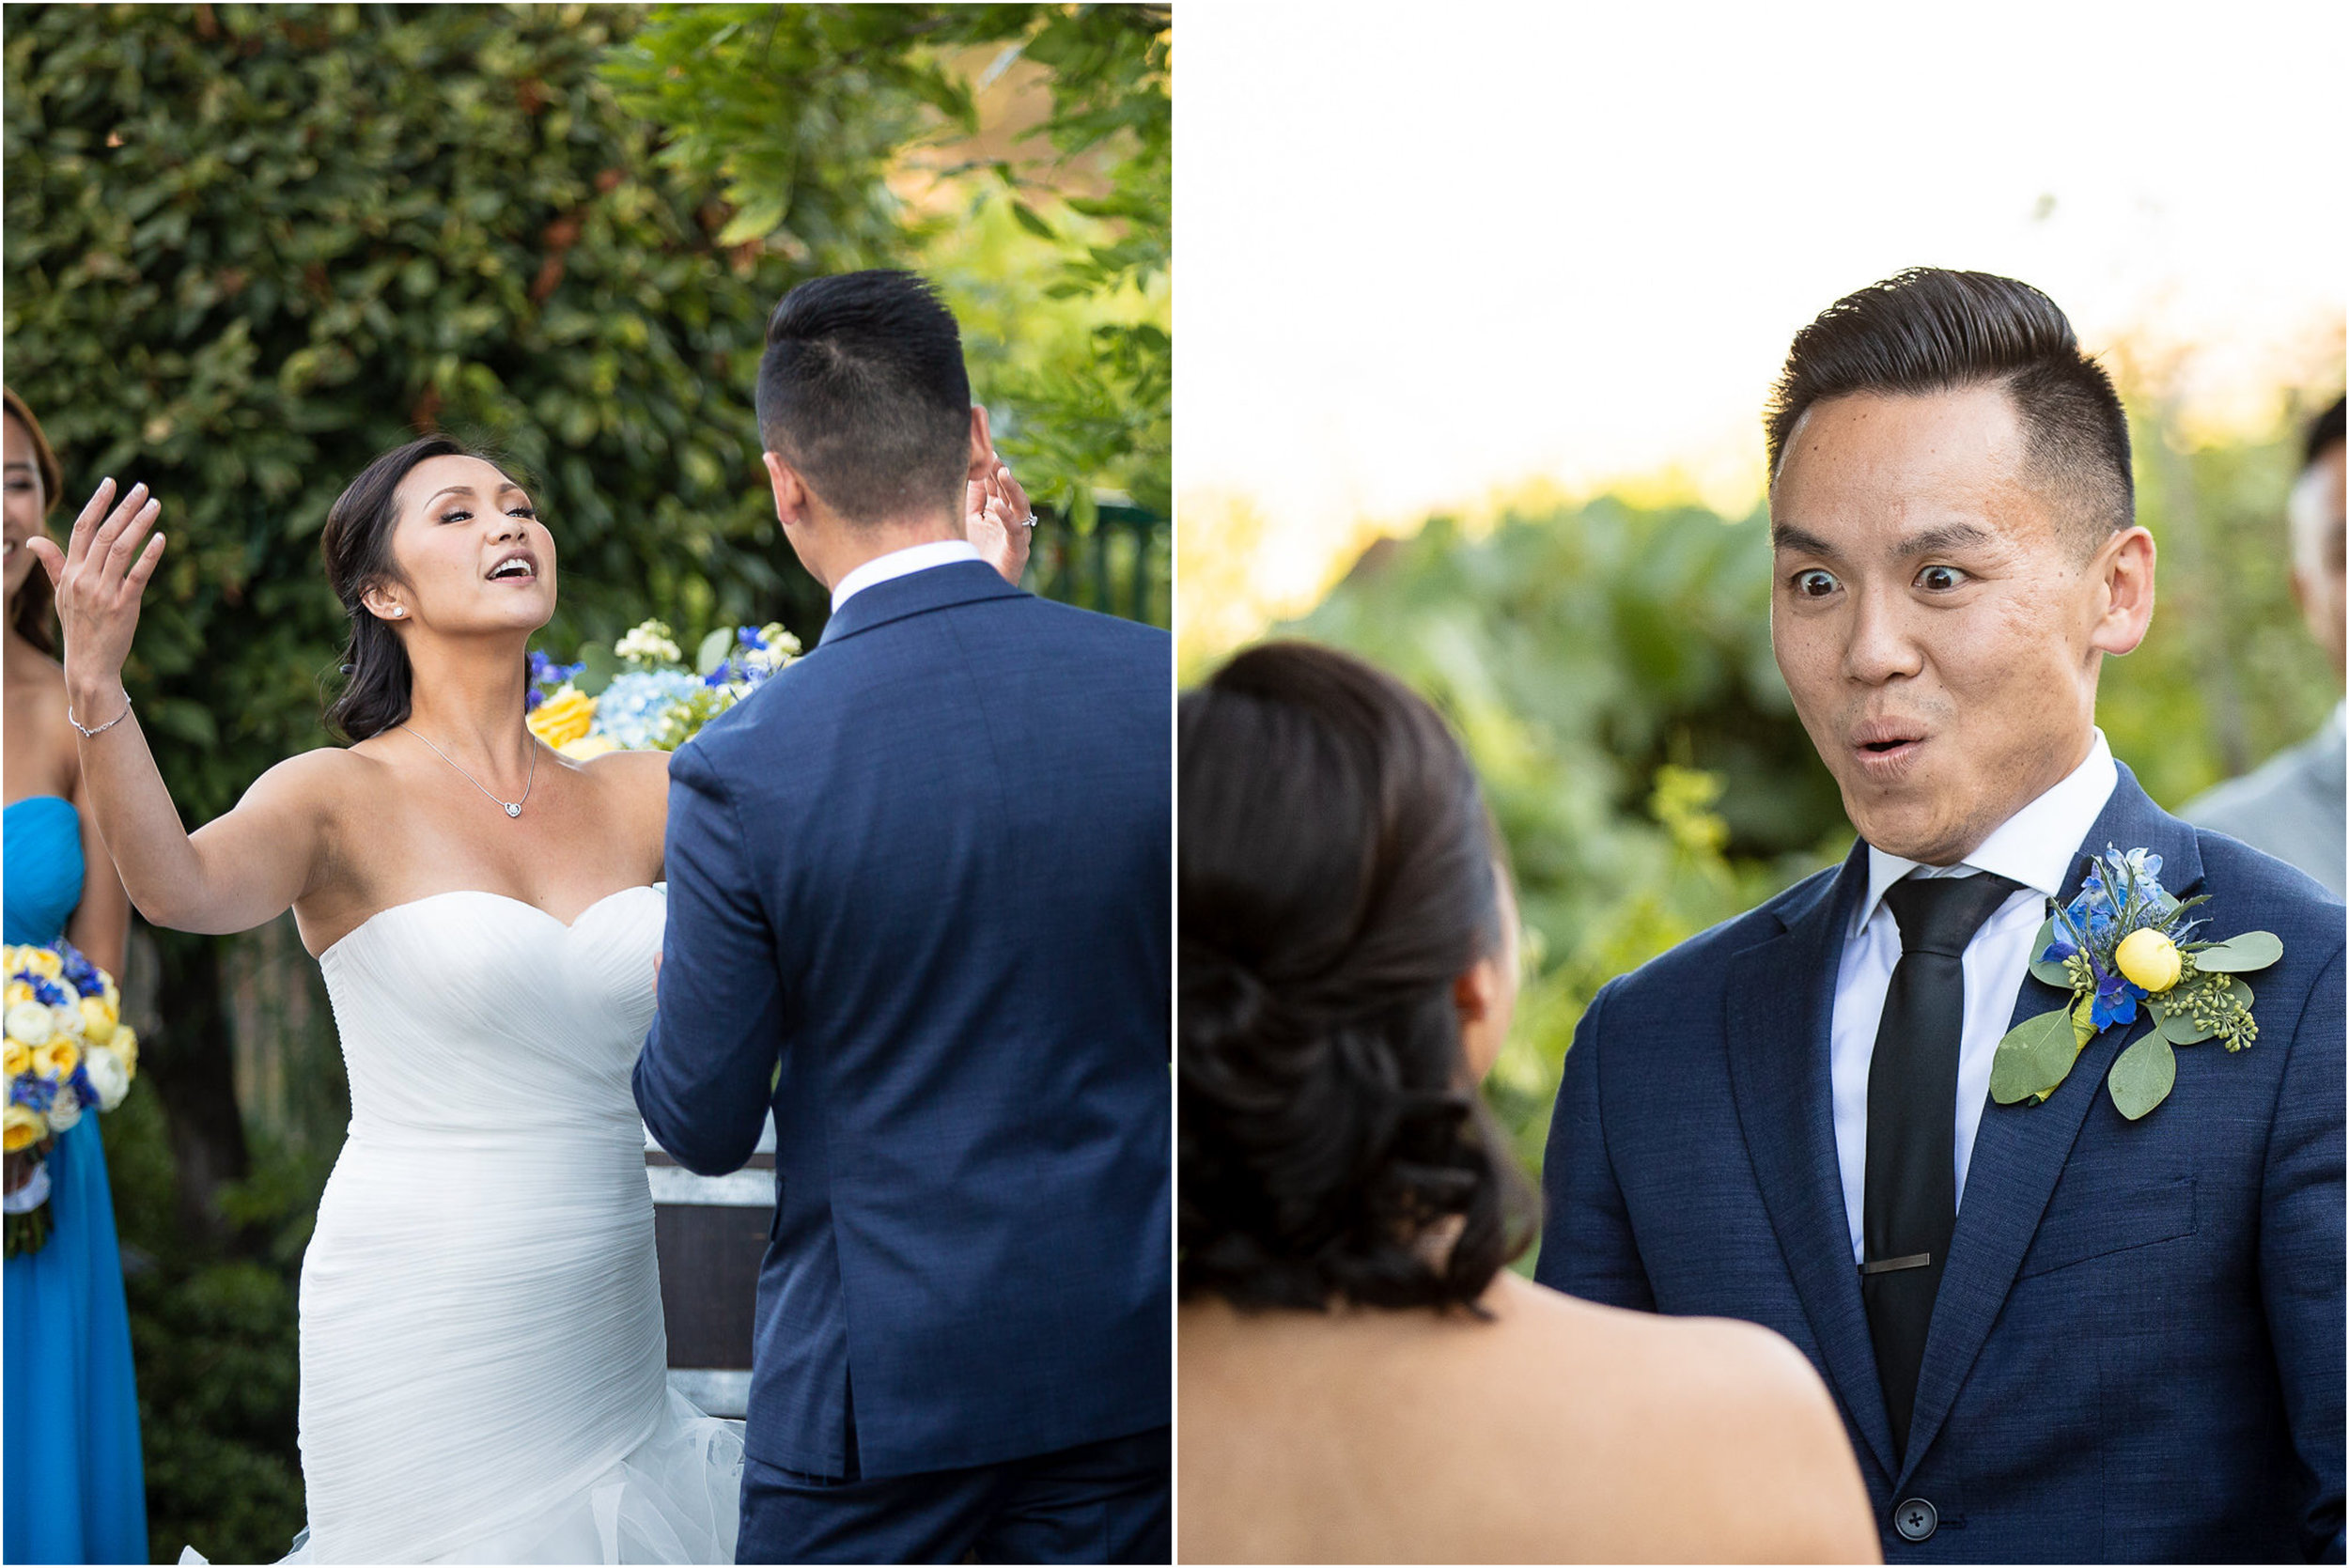 Their amazing vows for each other got amazing reactions.